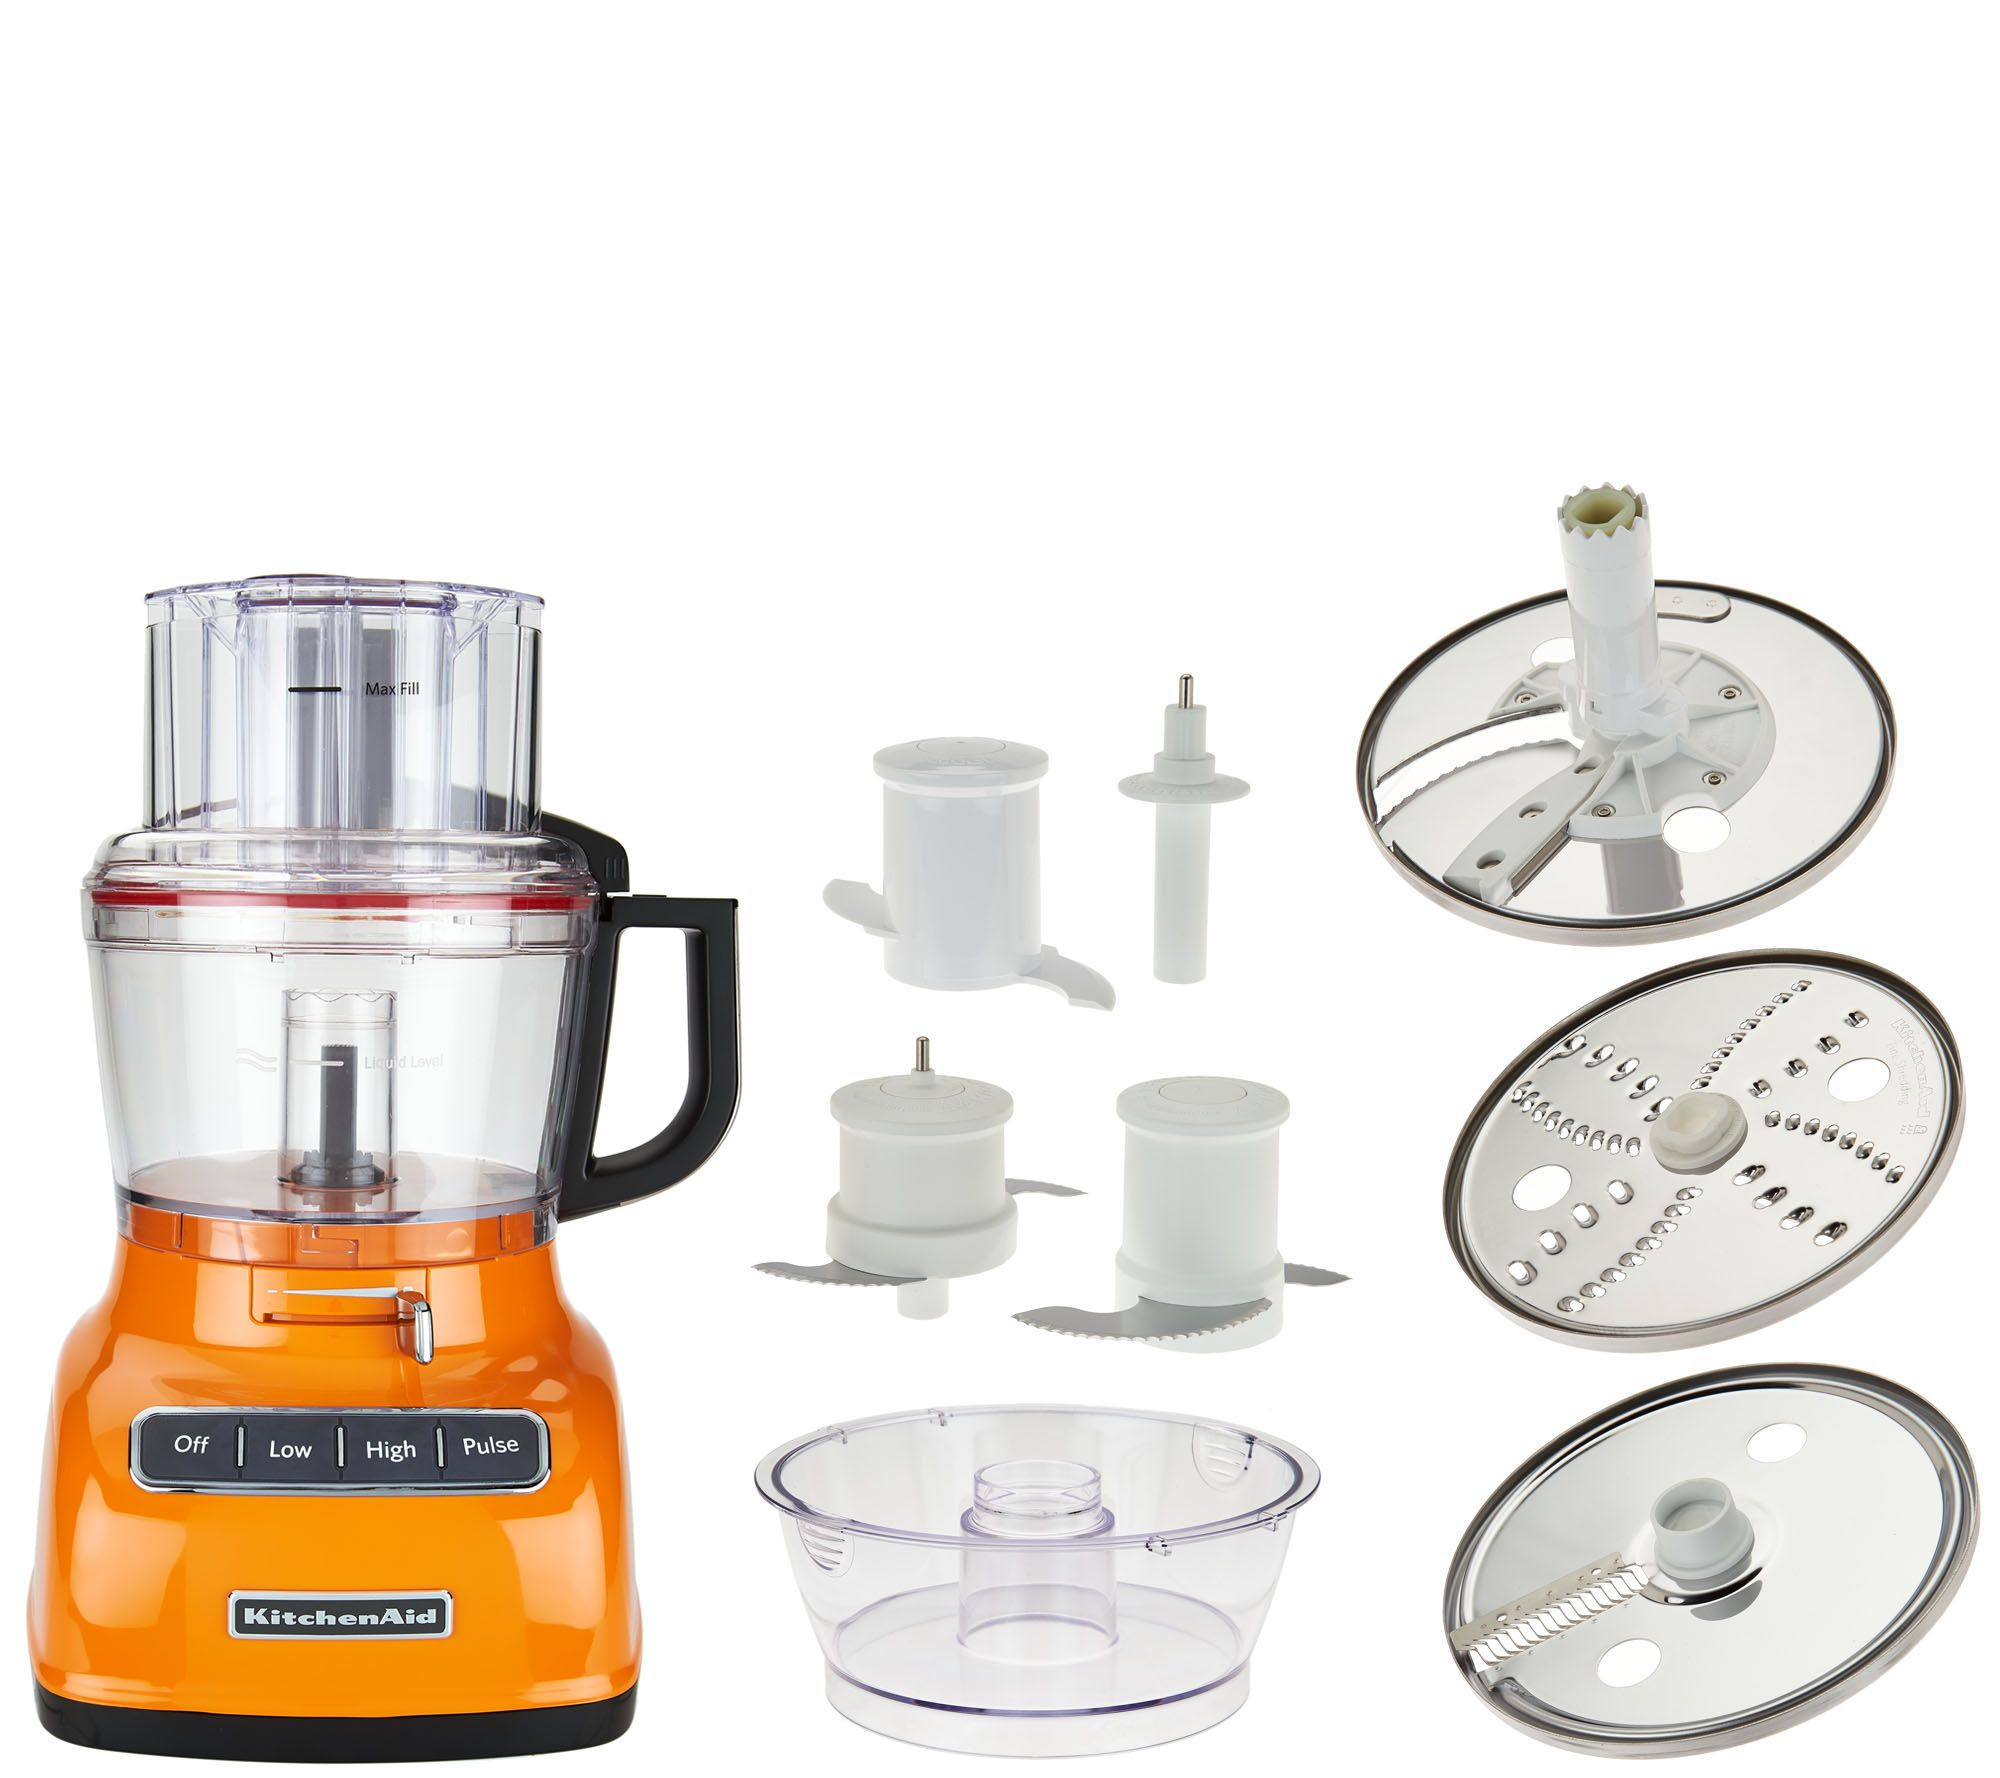 Attirant KitchenAid 9 Cup ExactSlice Food Processor W/Julienne Disc   Page 1 U2014  QVC.com